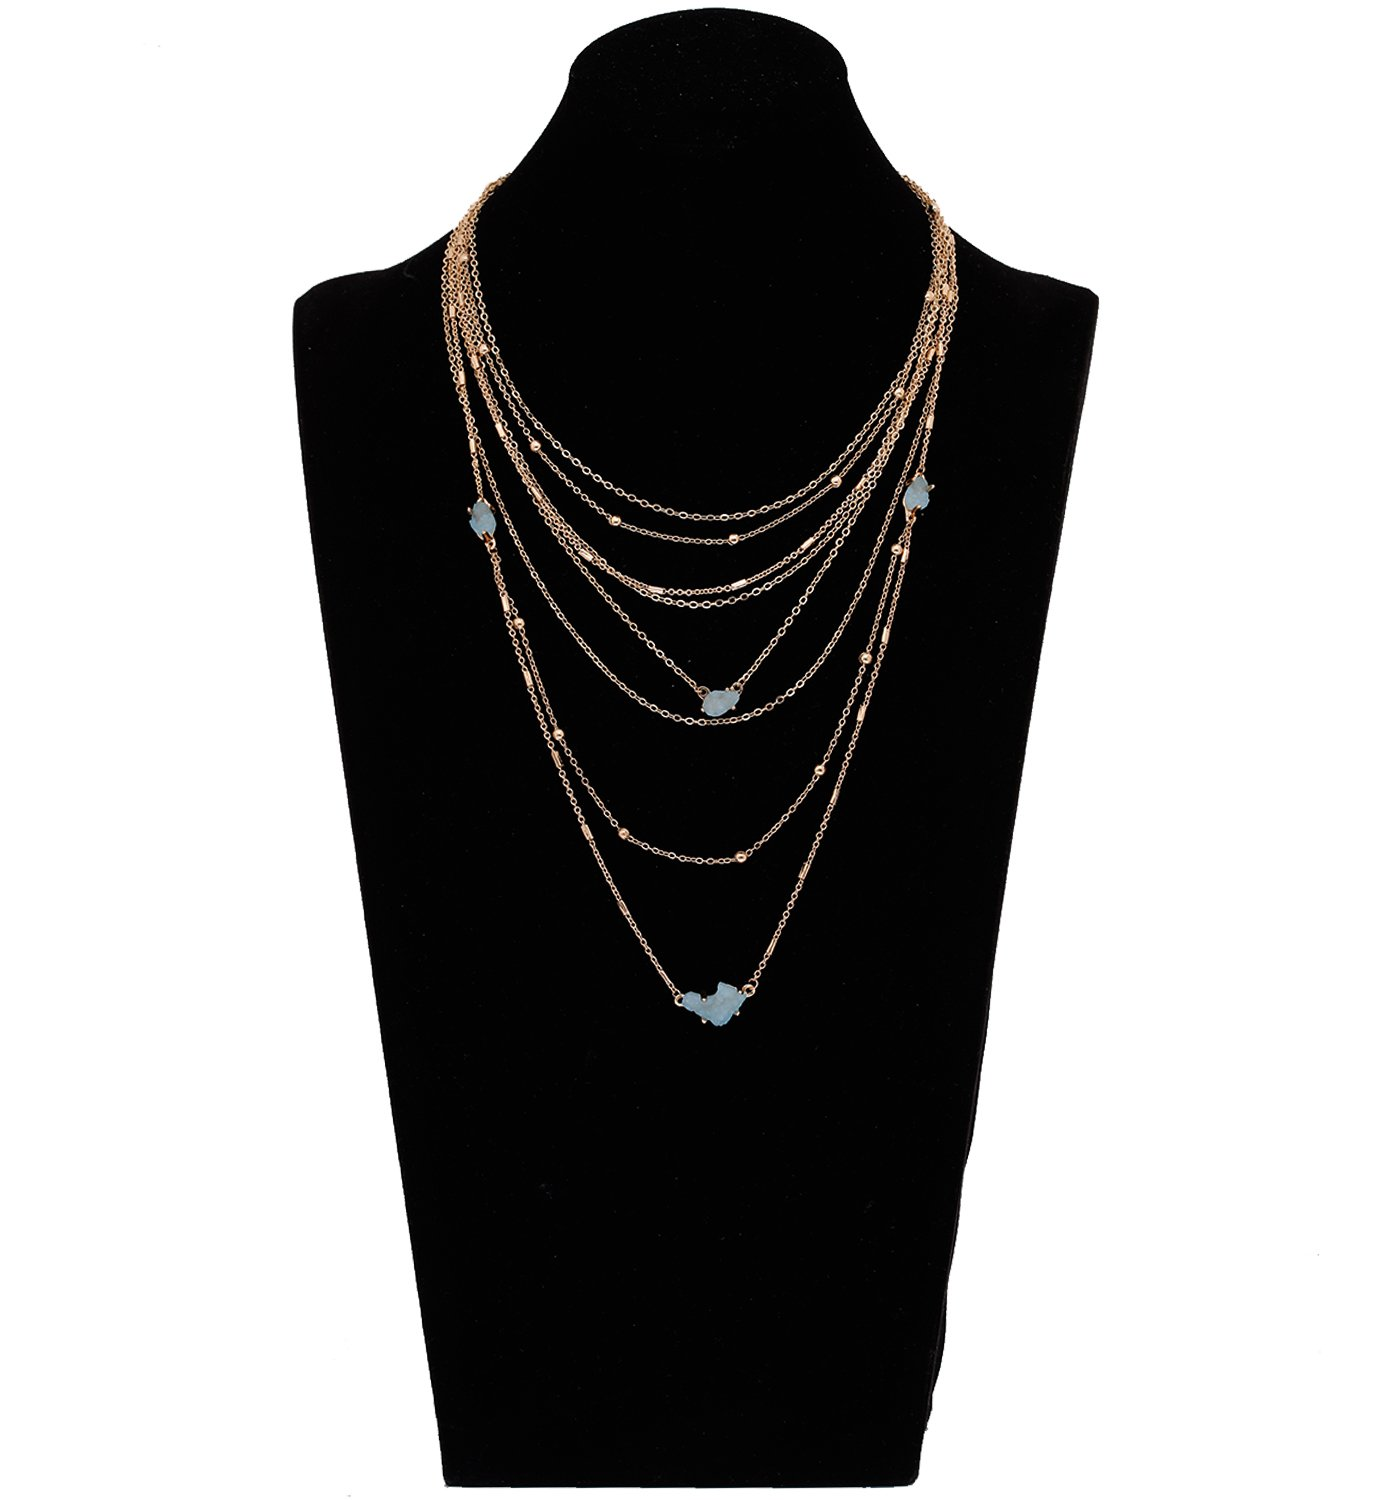 YEYA Bohemia Multilayer Necklace For Women Girls Waterfall Layered Choker Necklace Handmade Charm Chain Tassel Pendant necklace statement Jewelry Necklace (Blue)